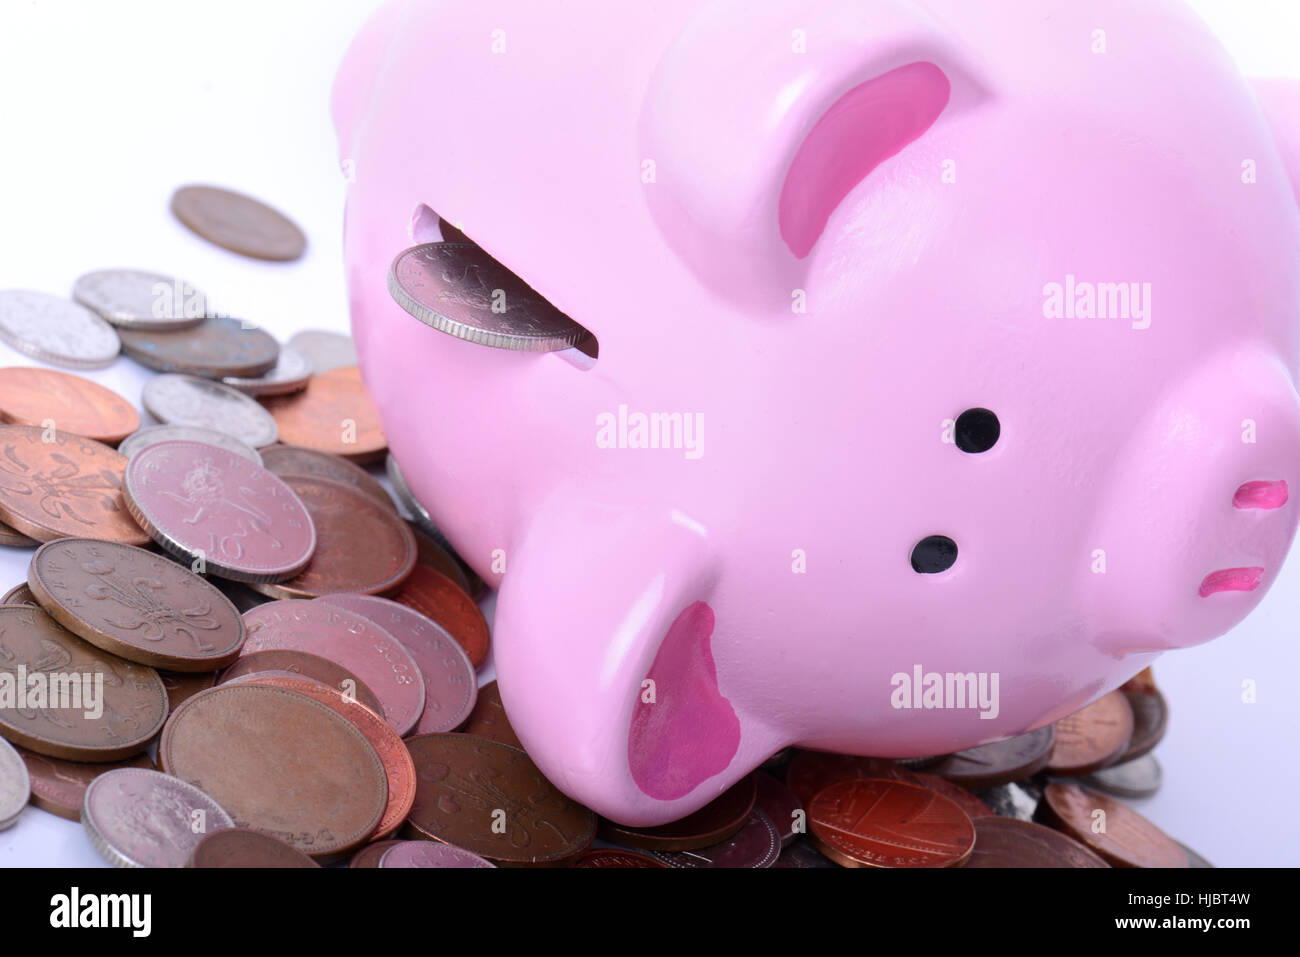 Piggy bank fallen over with coins pouring out concept of debt or finance issues - Stock Image